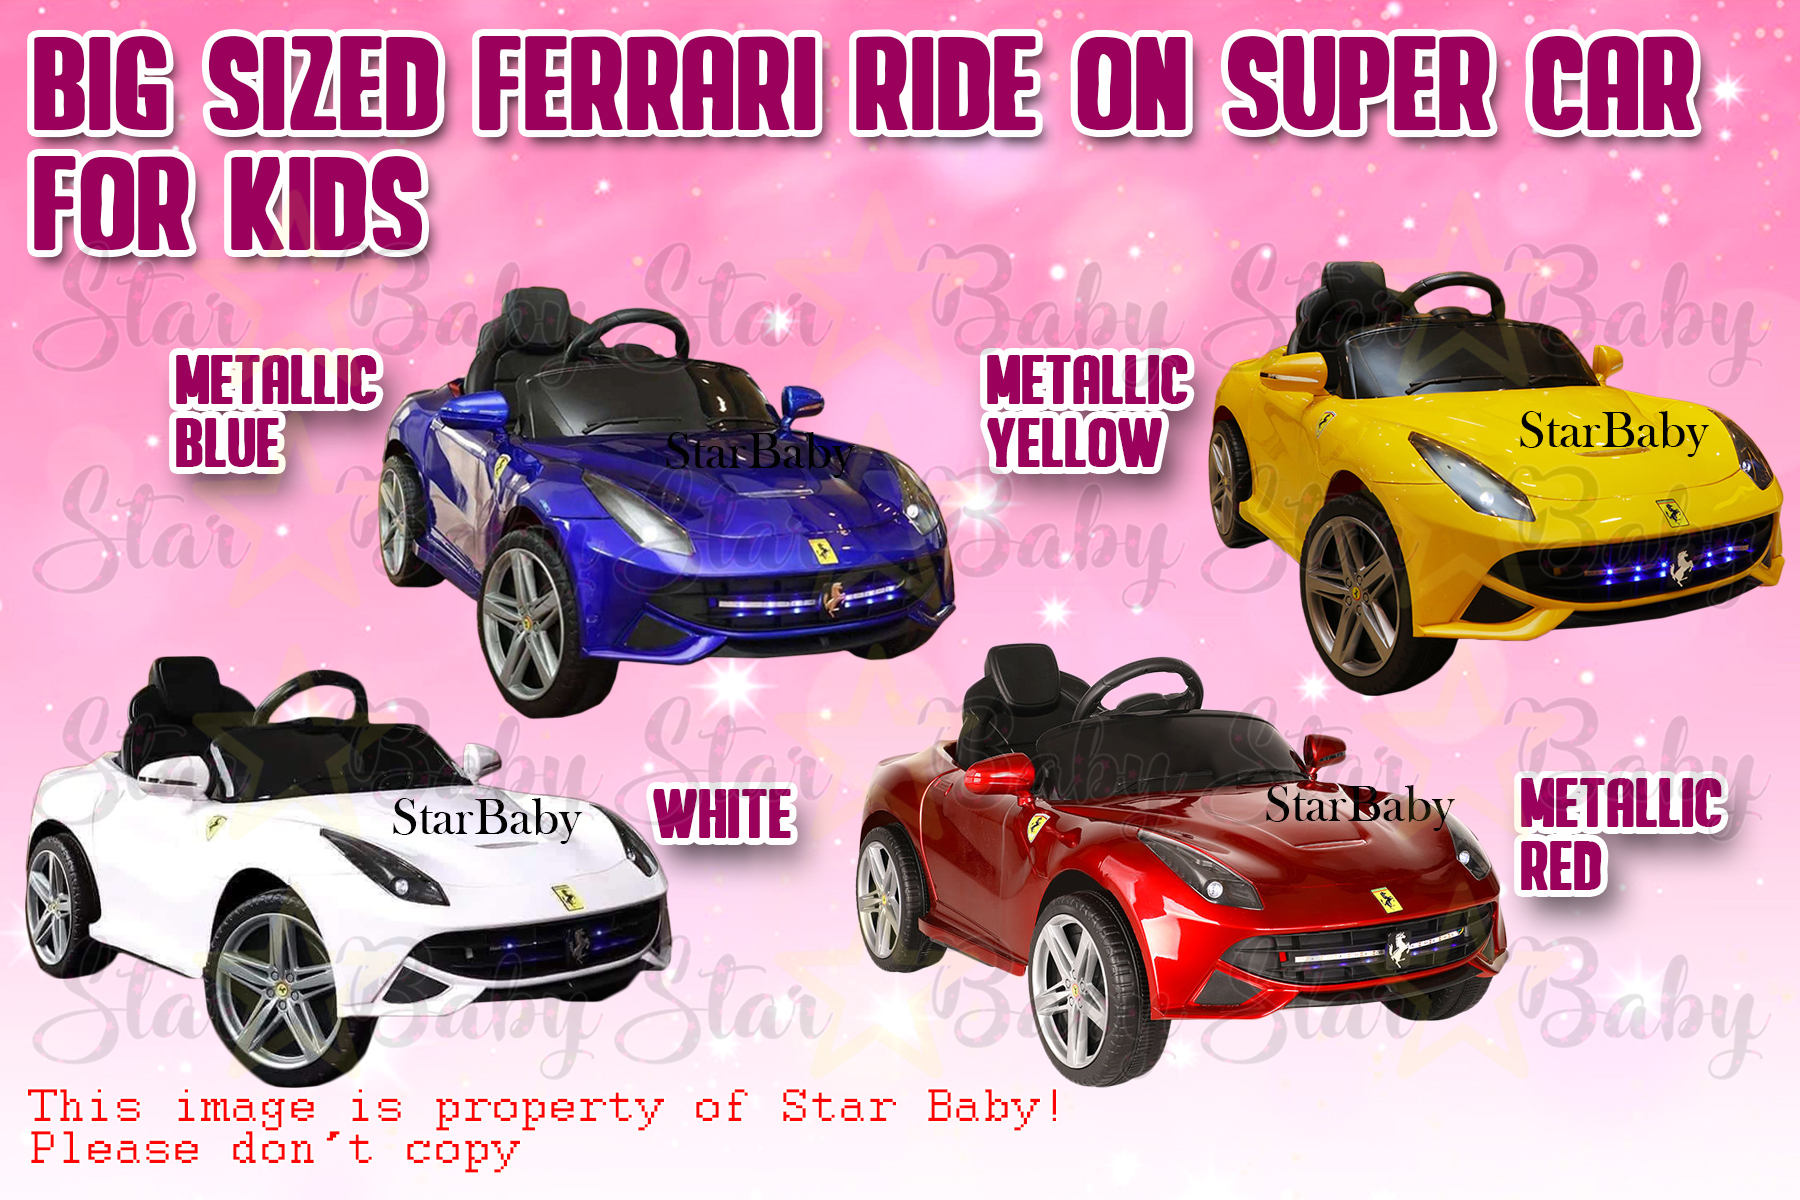 Star Baby Remote Control Big Ferrari Ride On Car For Kids Rechargeable Toy Lazada Ph